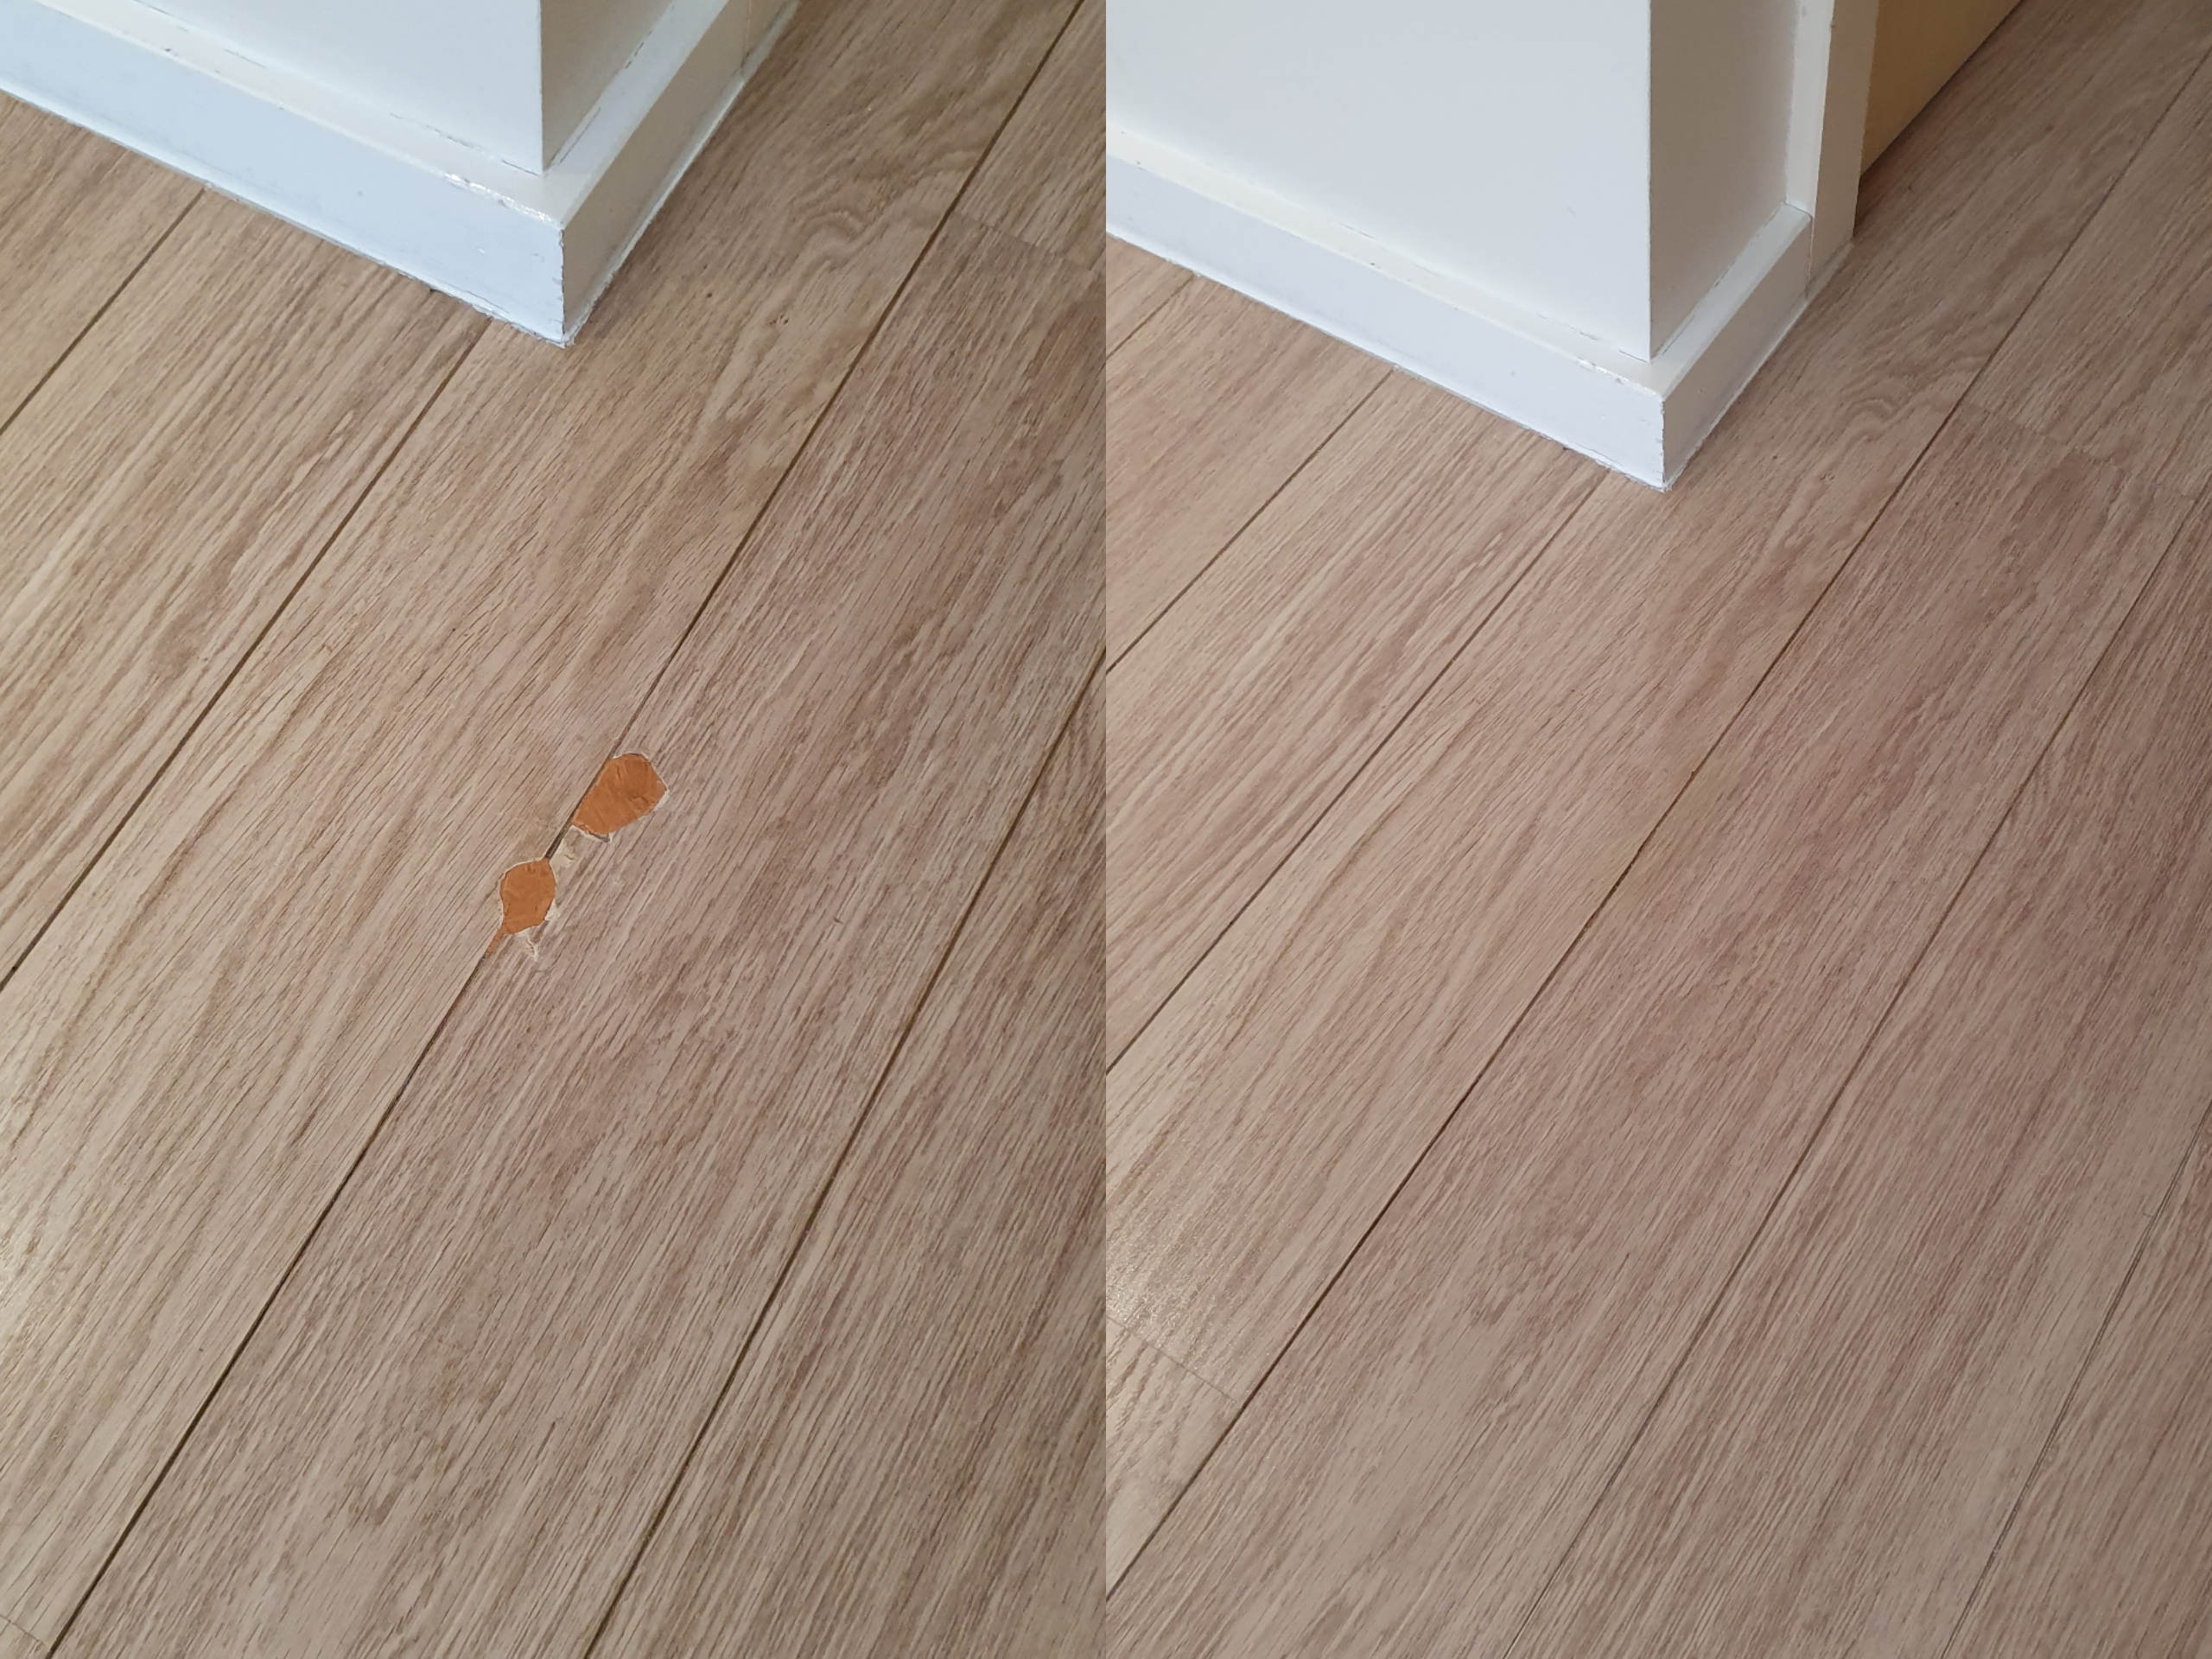 laminate flooring before and after